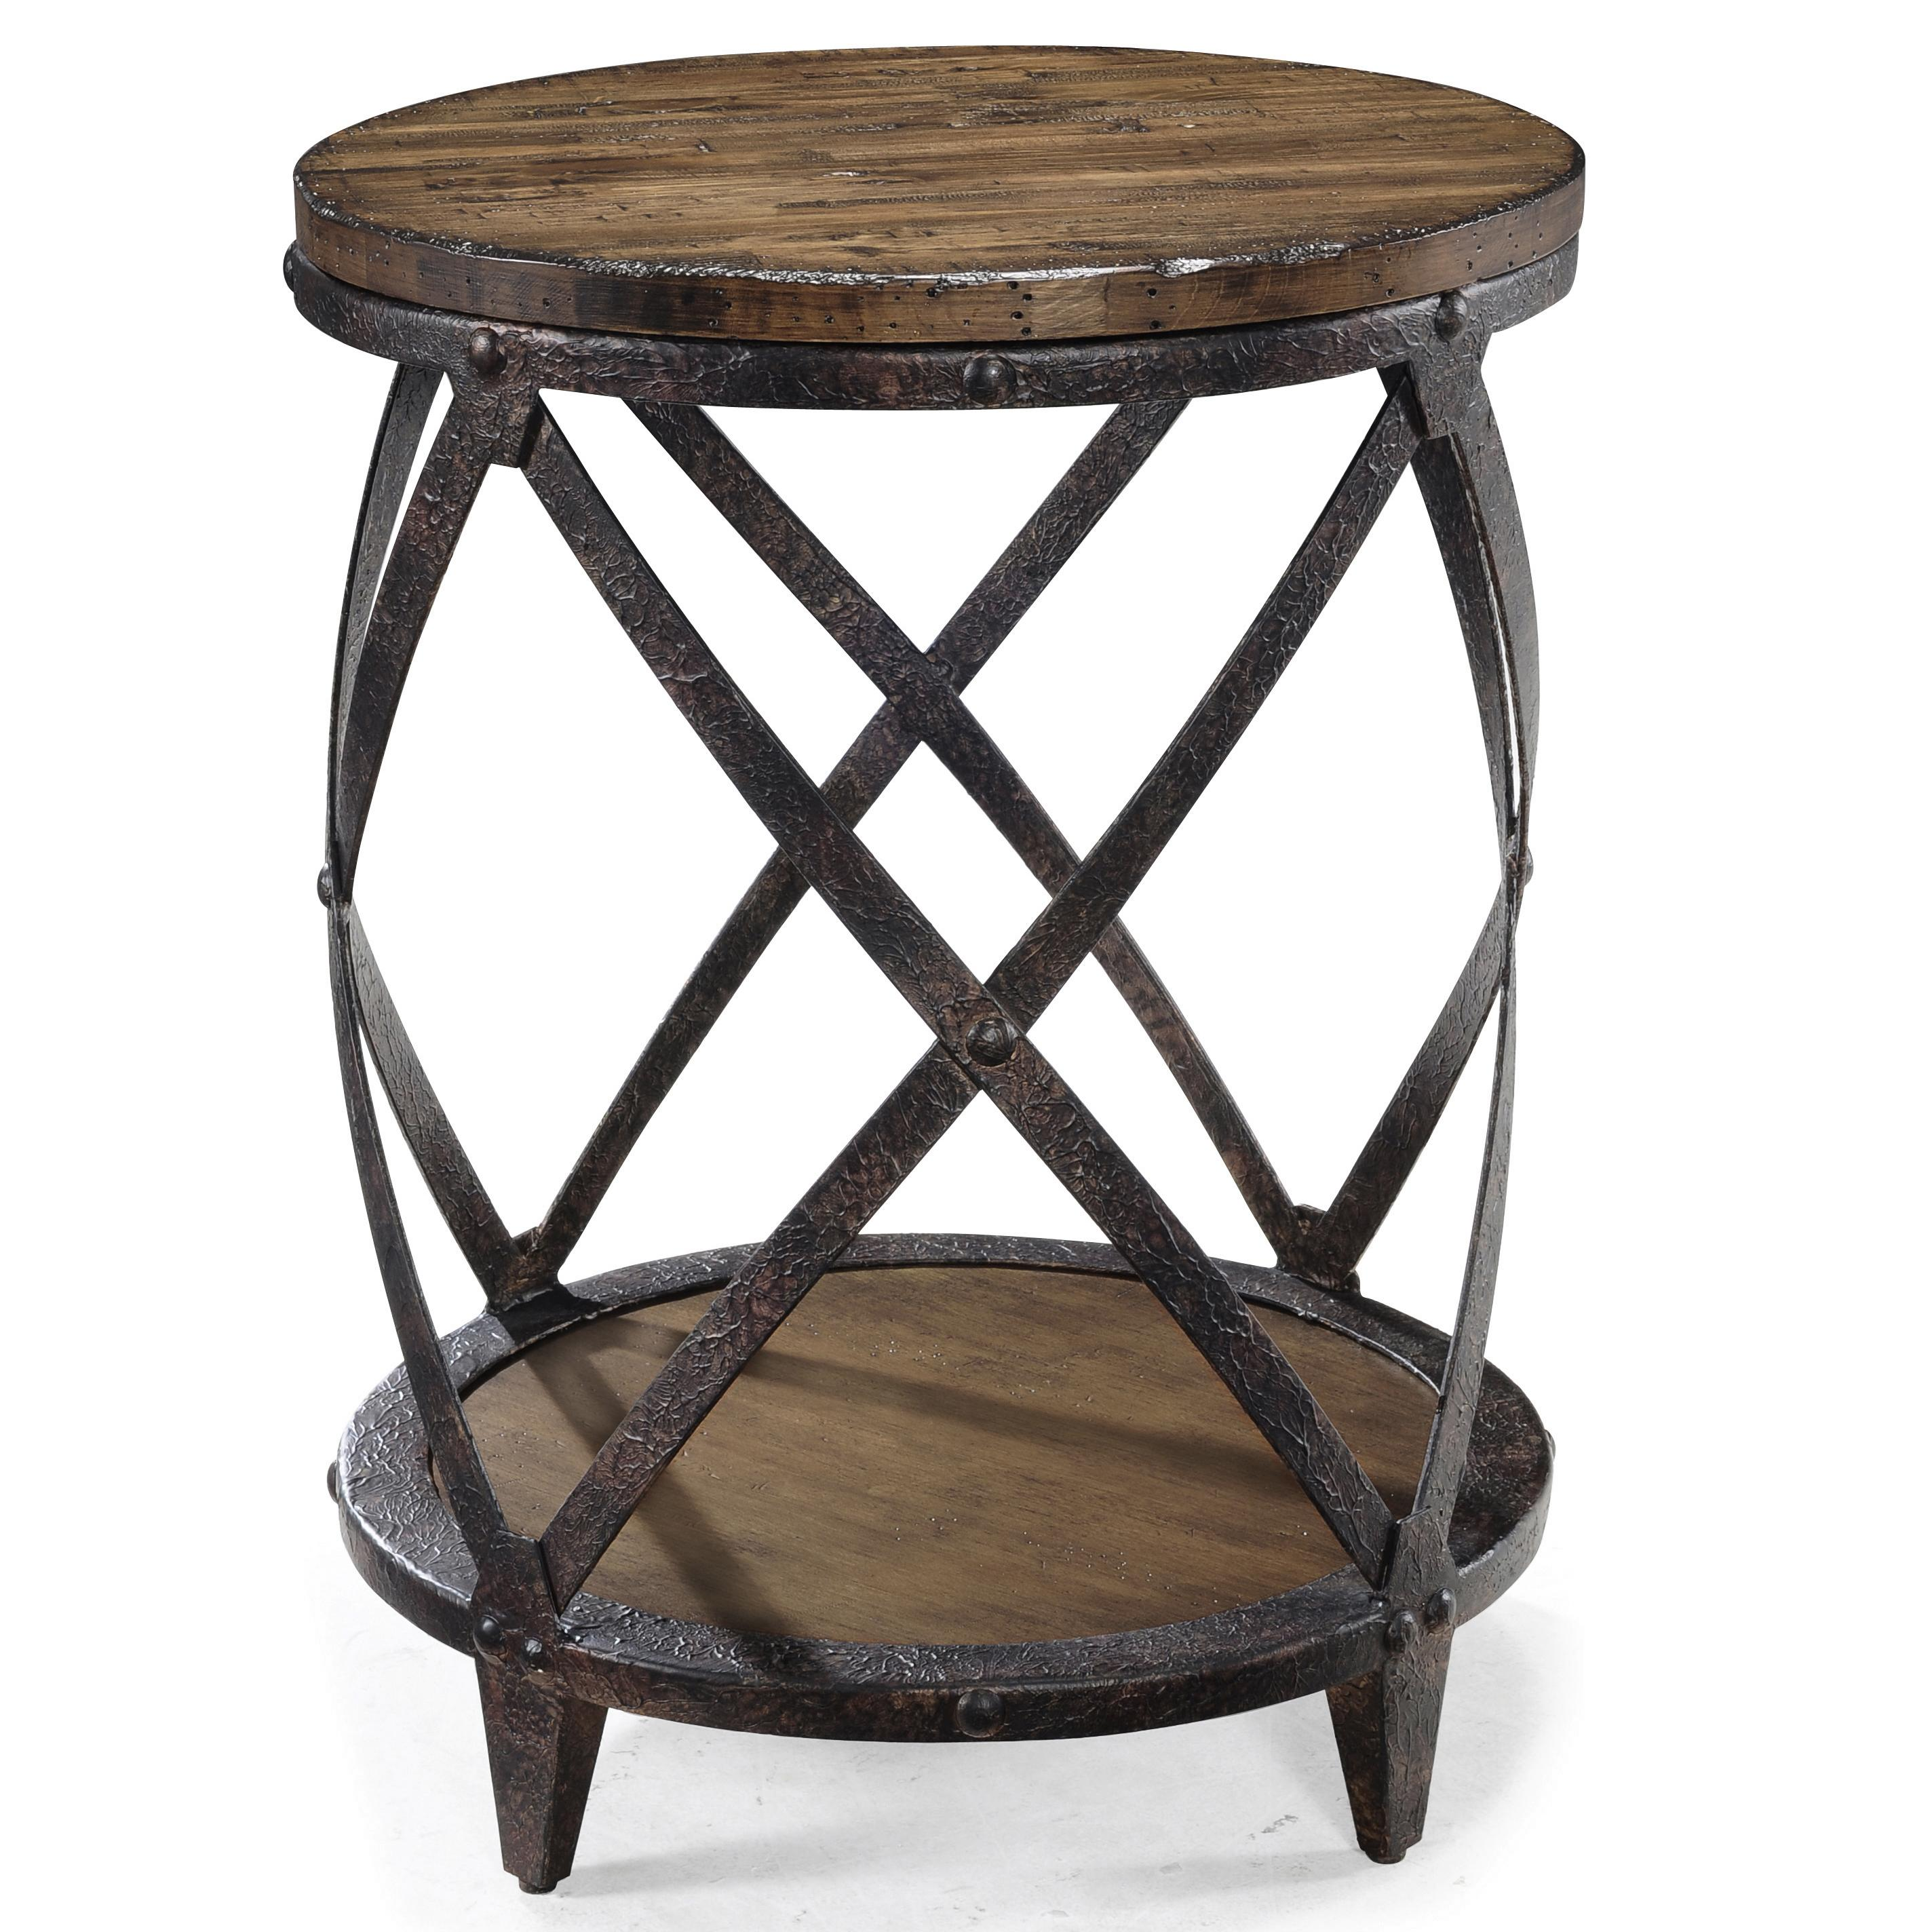 black walnut end table the outrageous beautiful wood round and metal side with storage tables designs cat litter house long thin coffee half circle small chairside vintage trunk